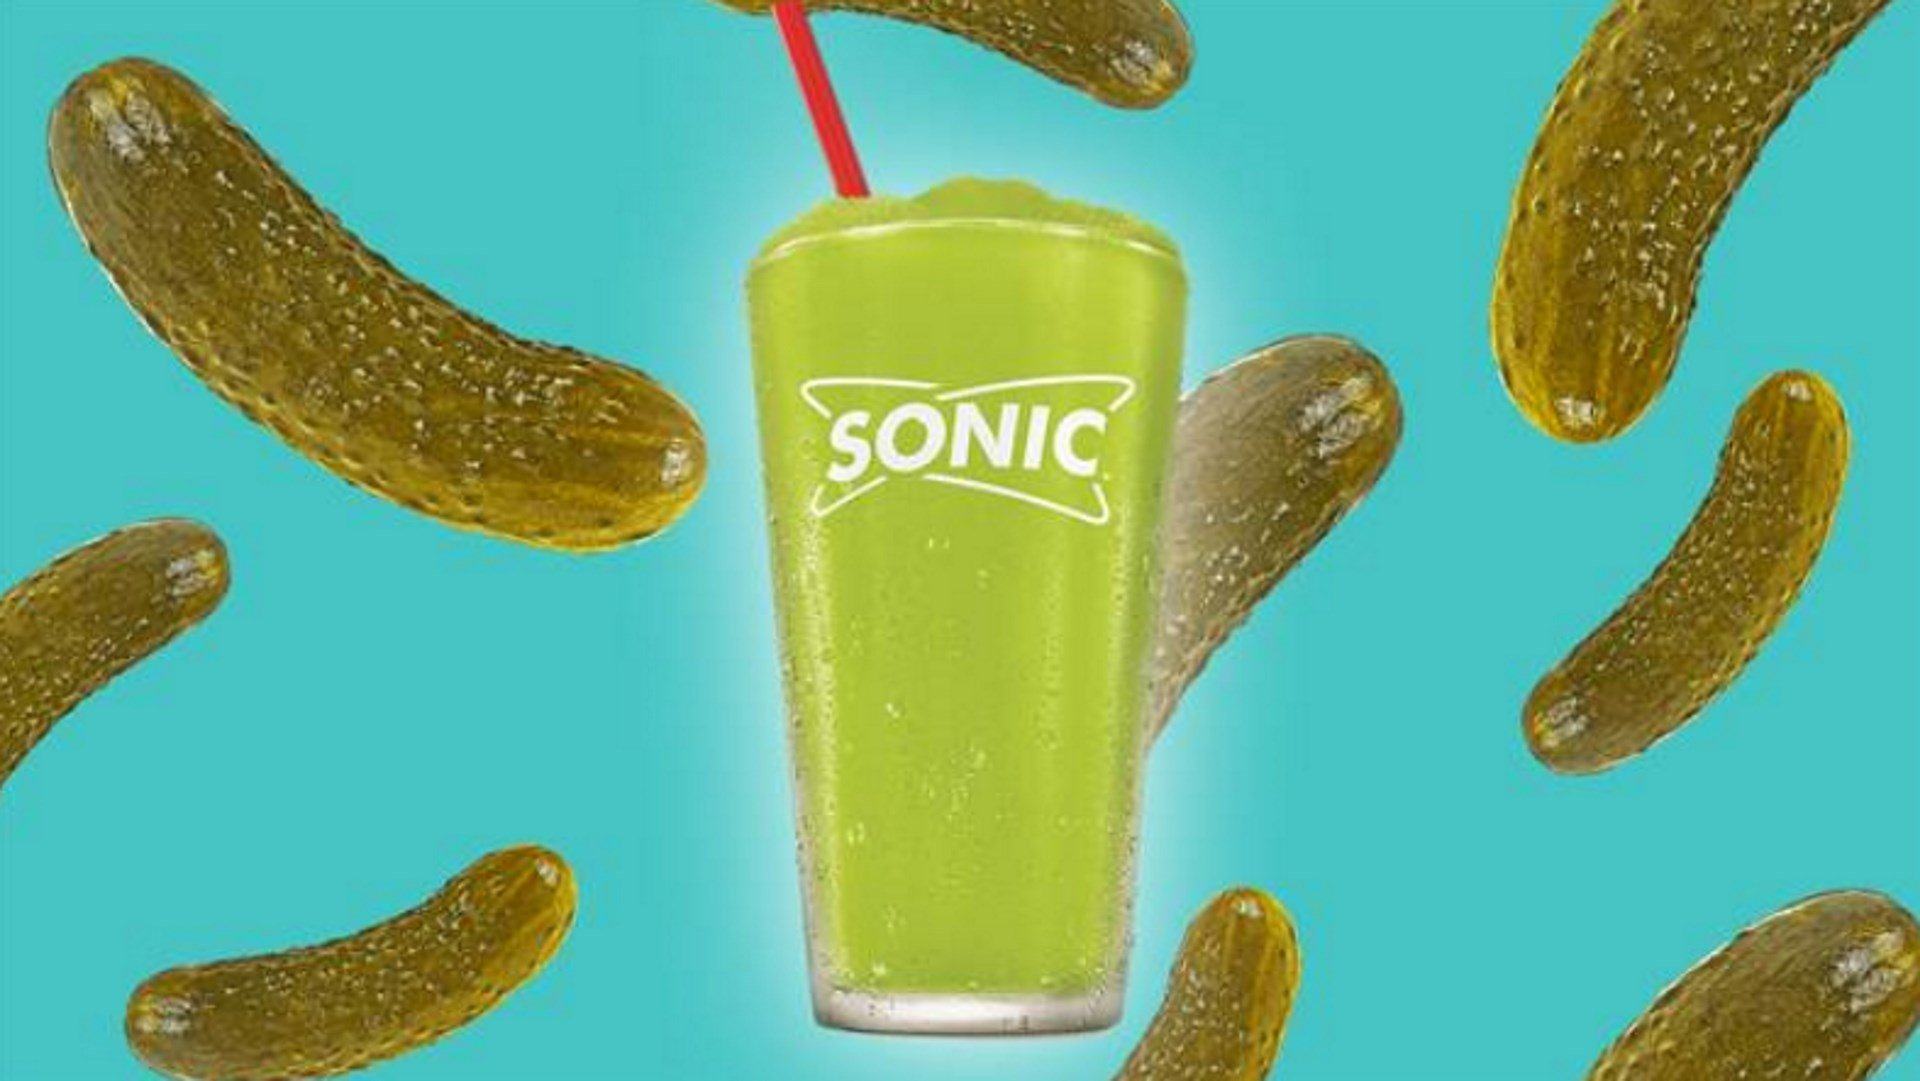 Sonic to roll out pickle juice slushies for summer